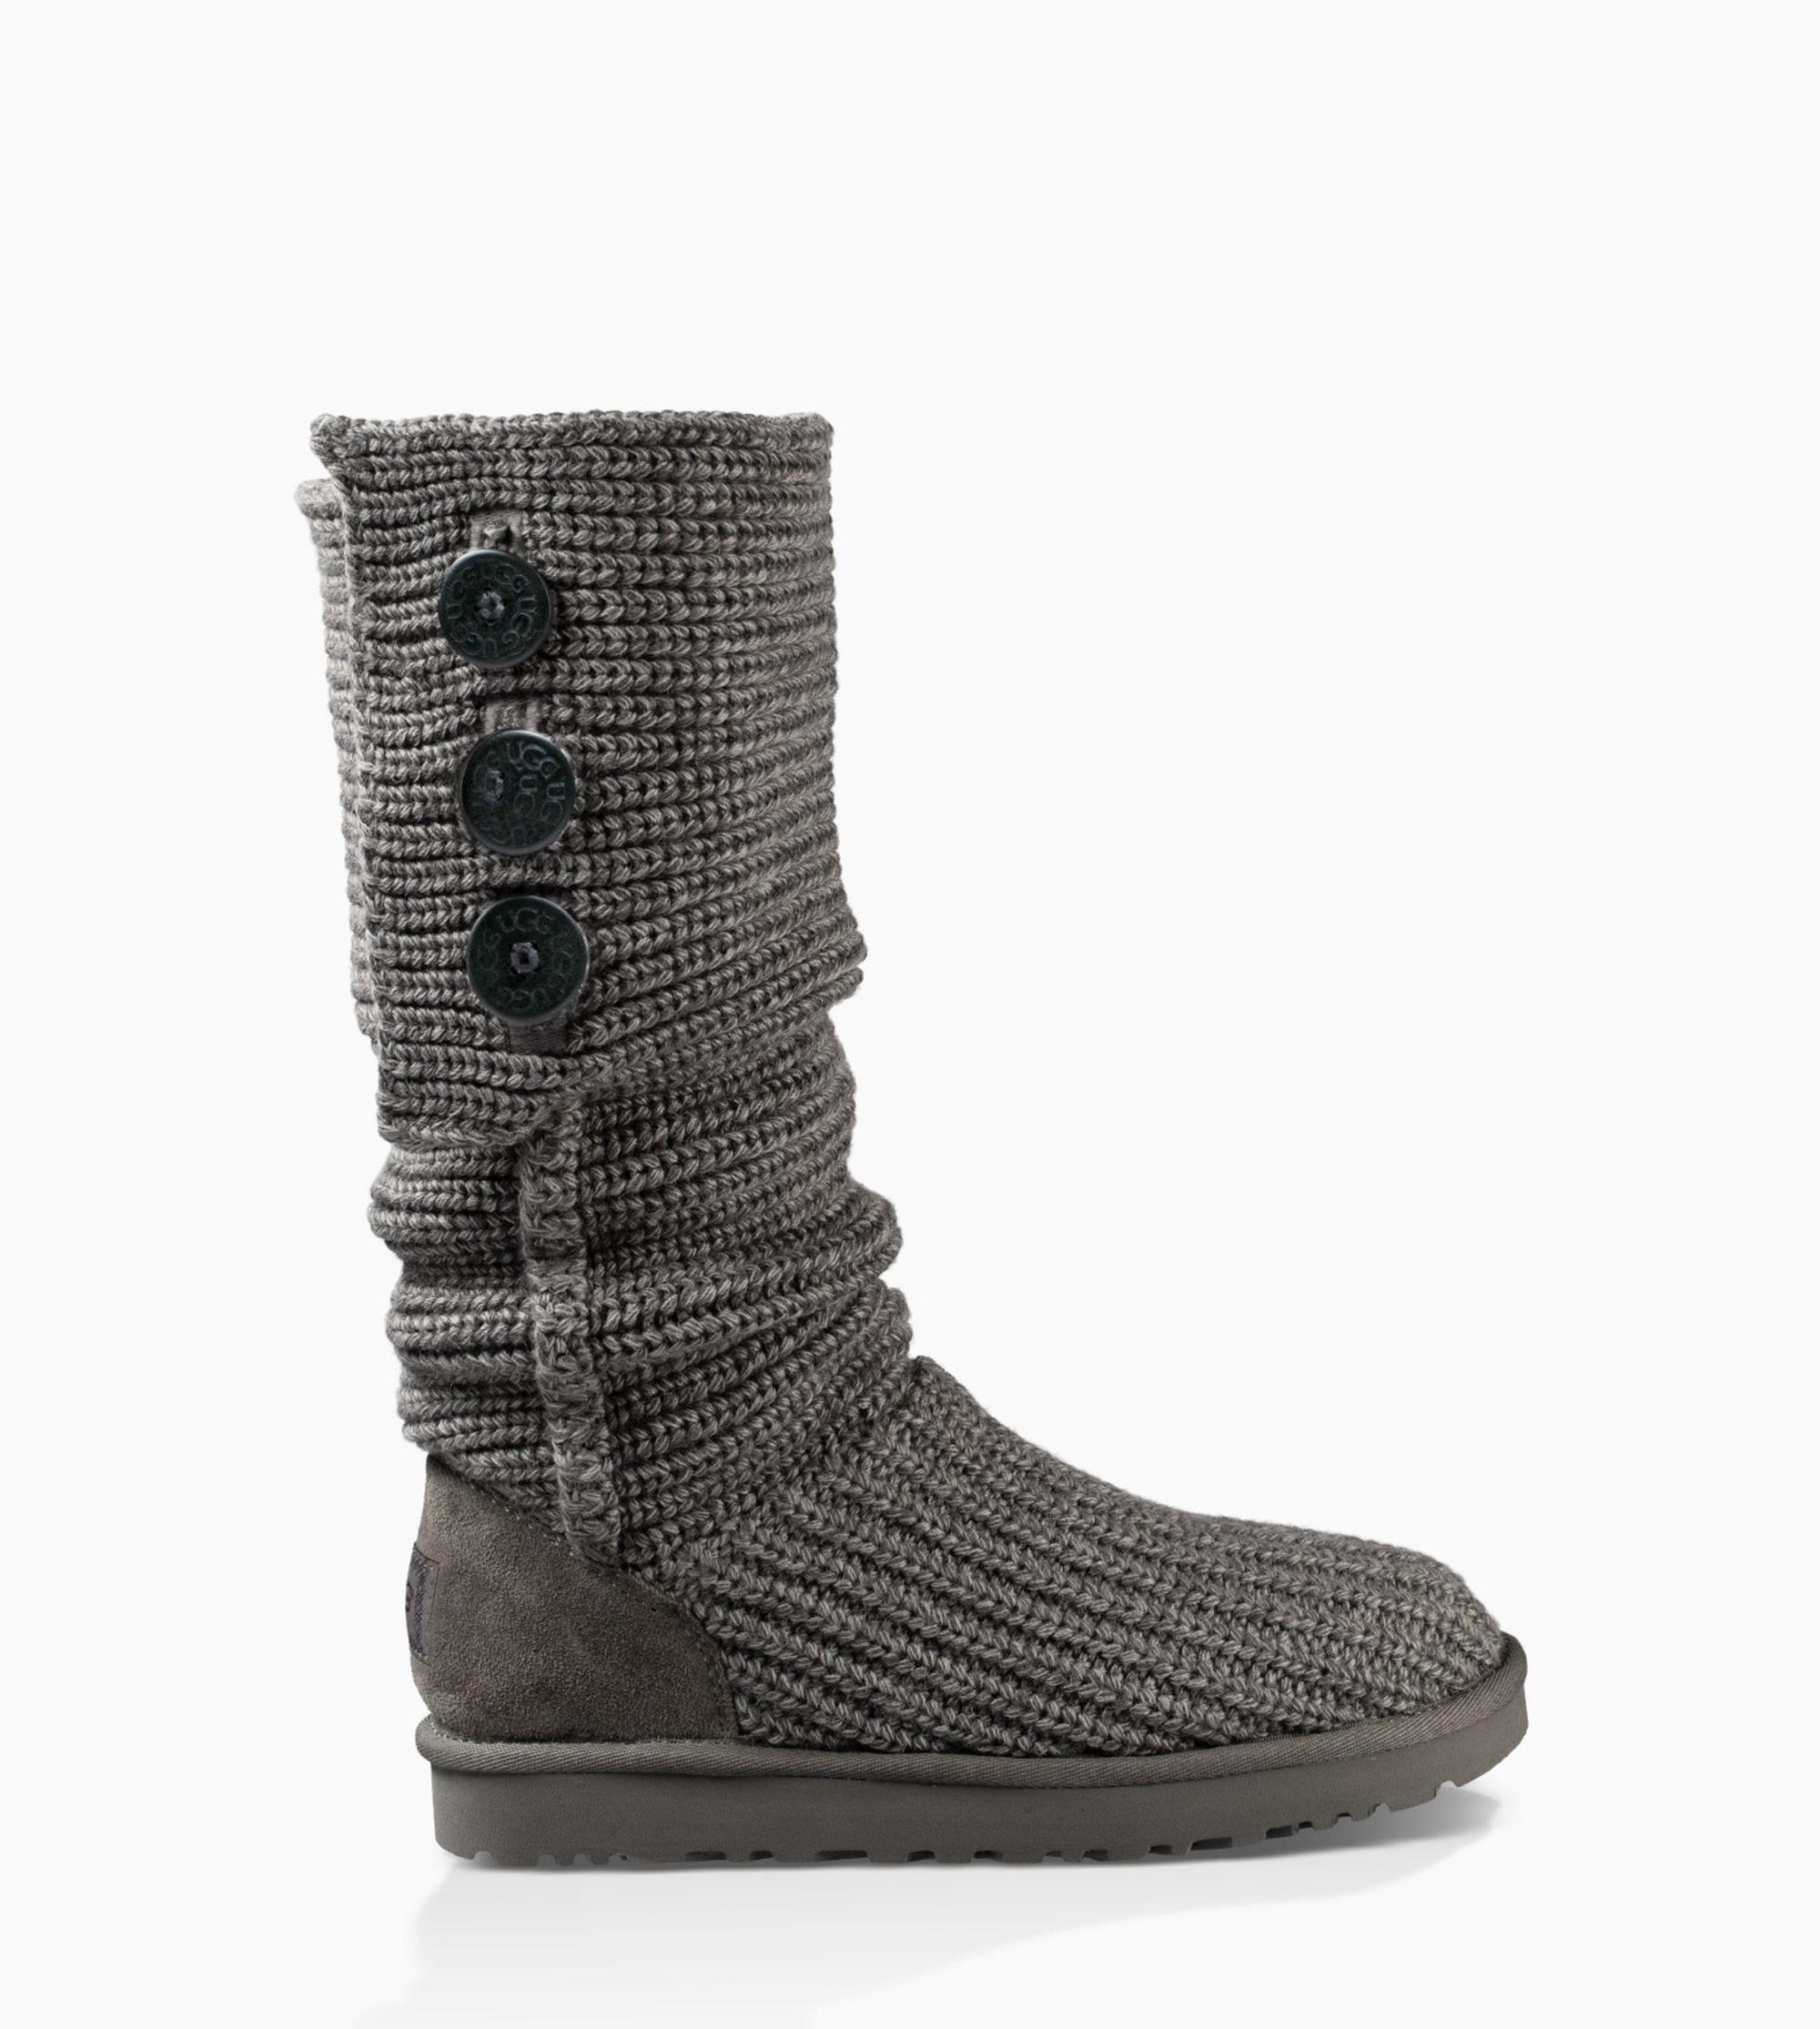 819cdccf531 Women's Gray Classic Cardy Boot